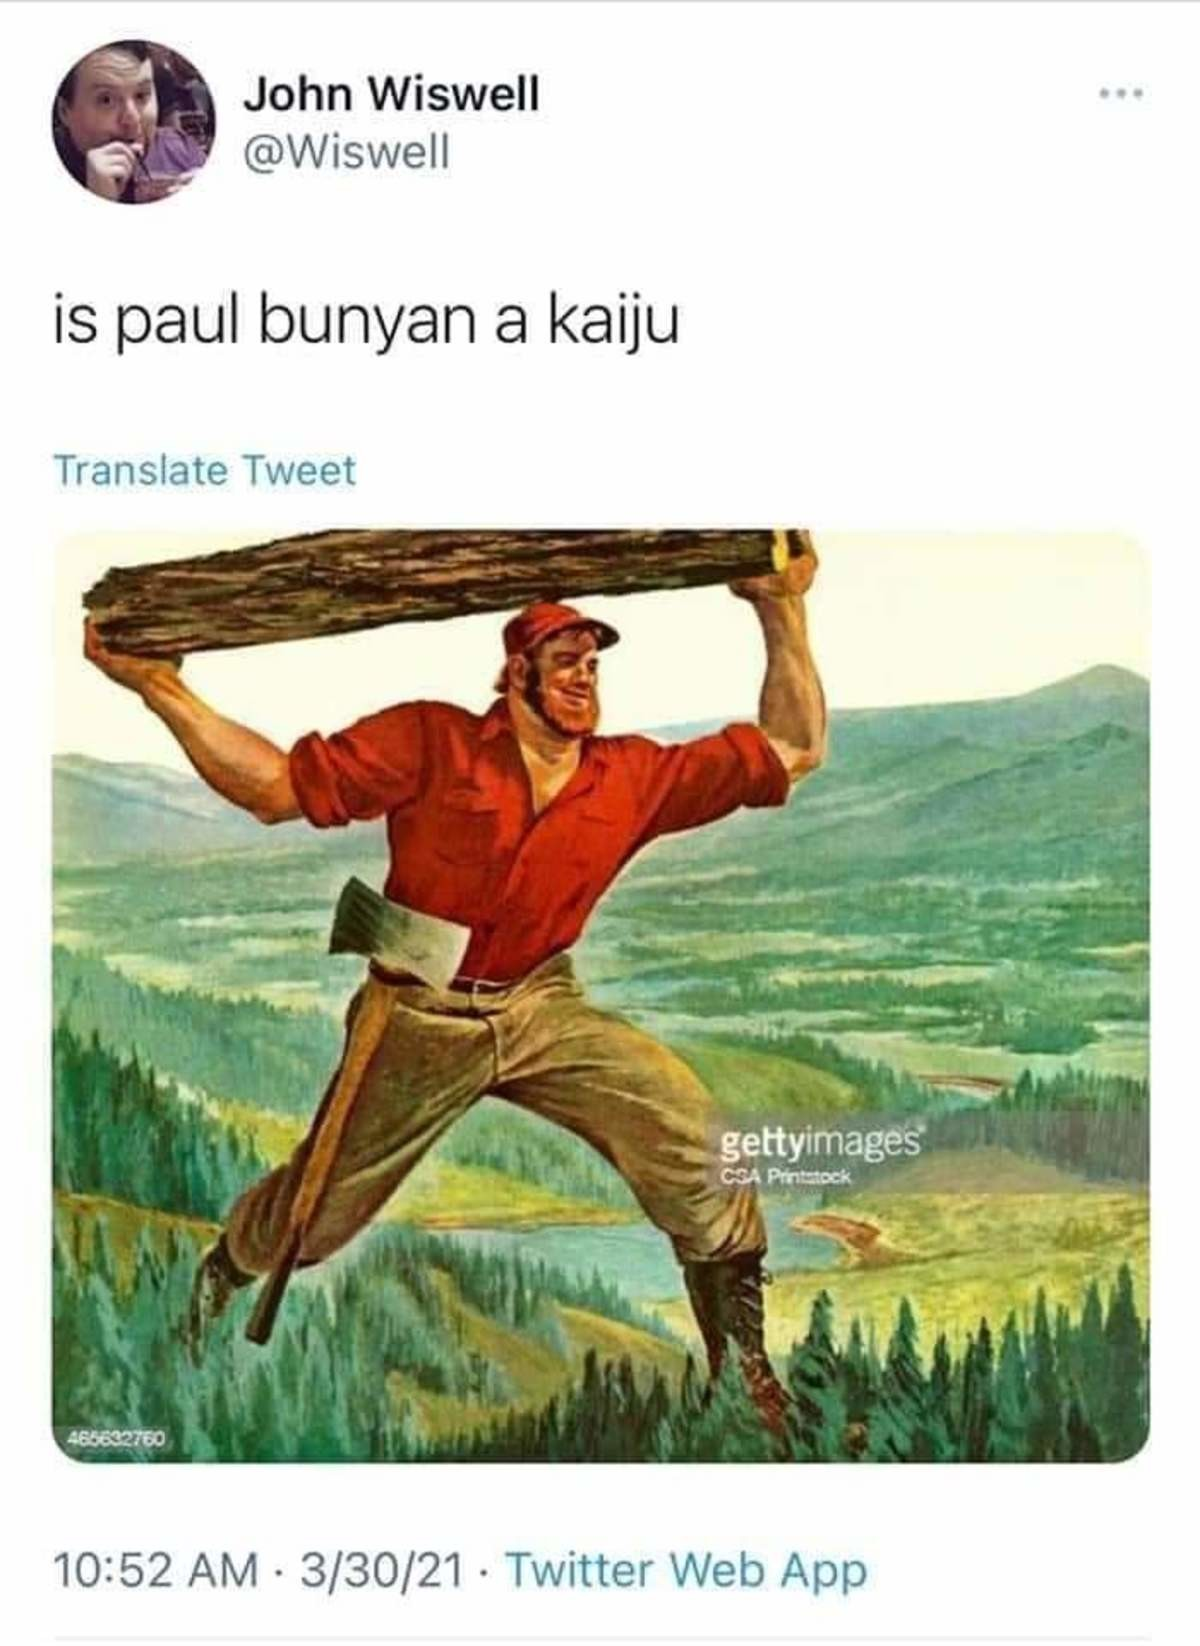 formative fat hysterical Stingray. .. If Paul Bunyan doesn't count because he's human, then Babe must because it's not.